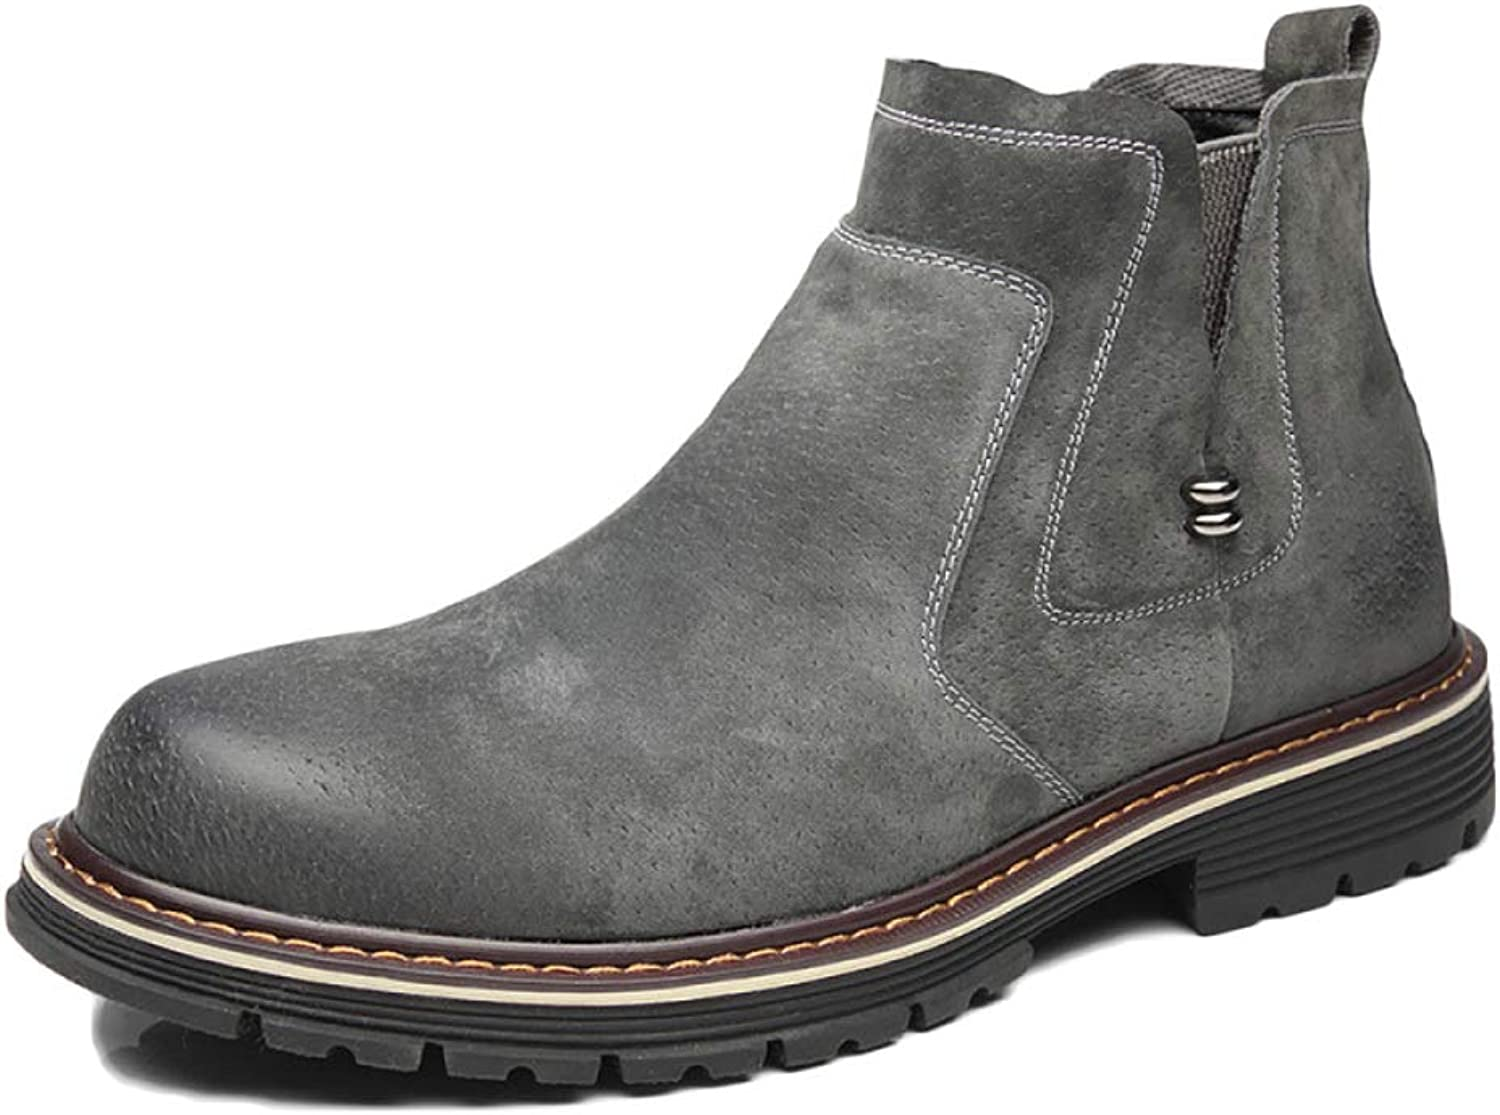 Men's Boots Chelsea Boots Leather Wedding Desert Brock Classic High Help Martin Boots Tooling